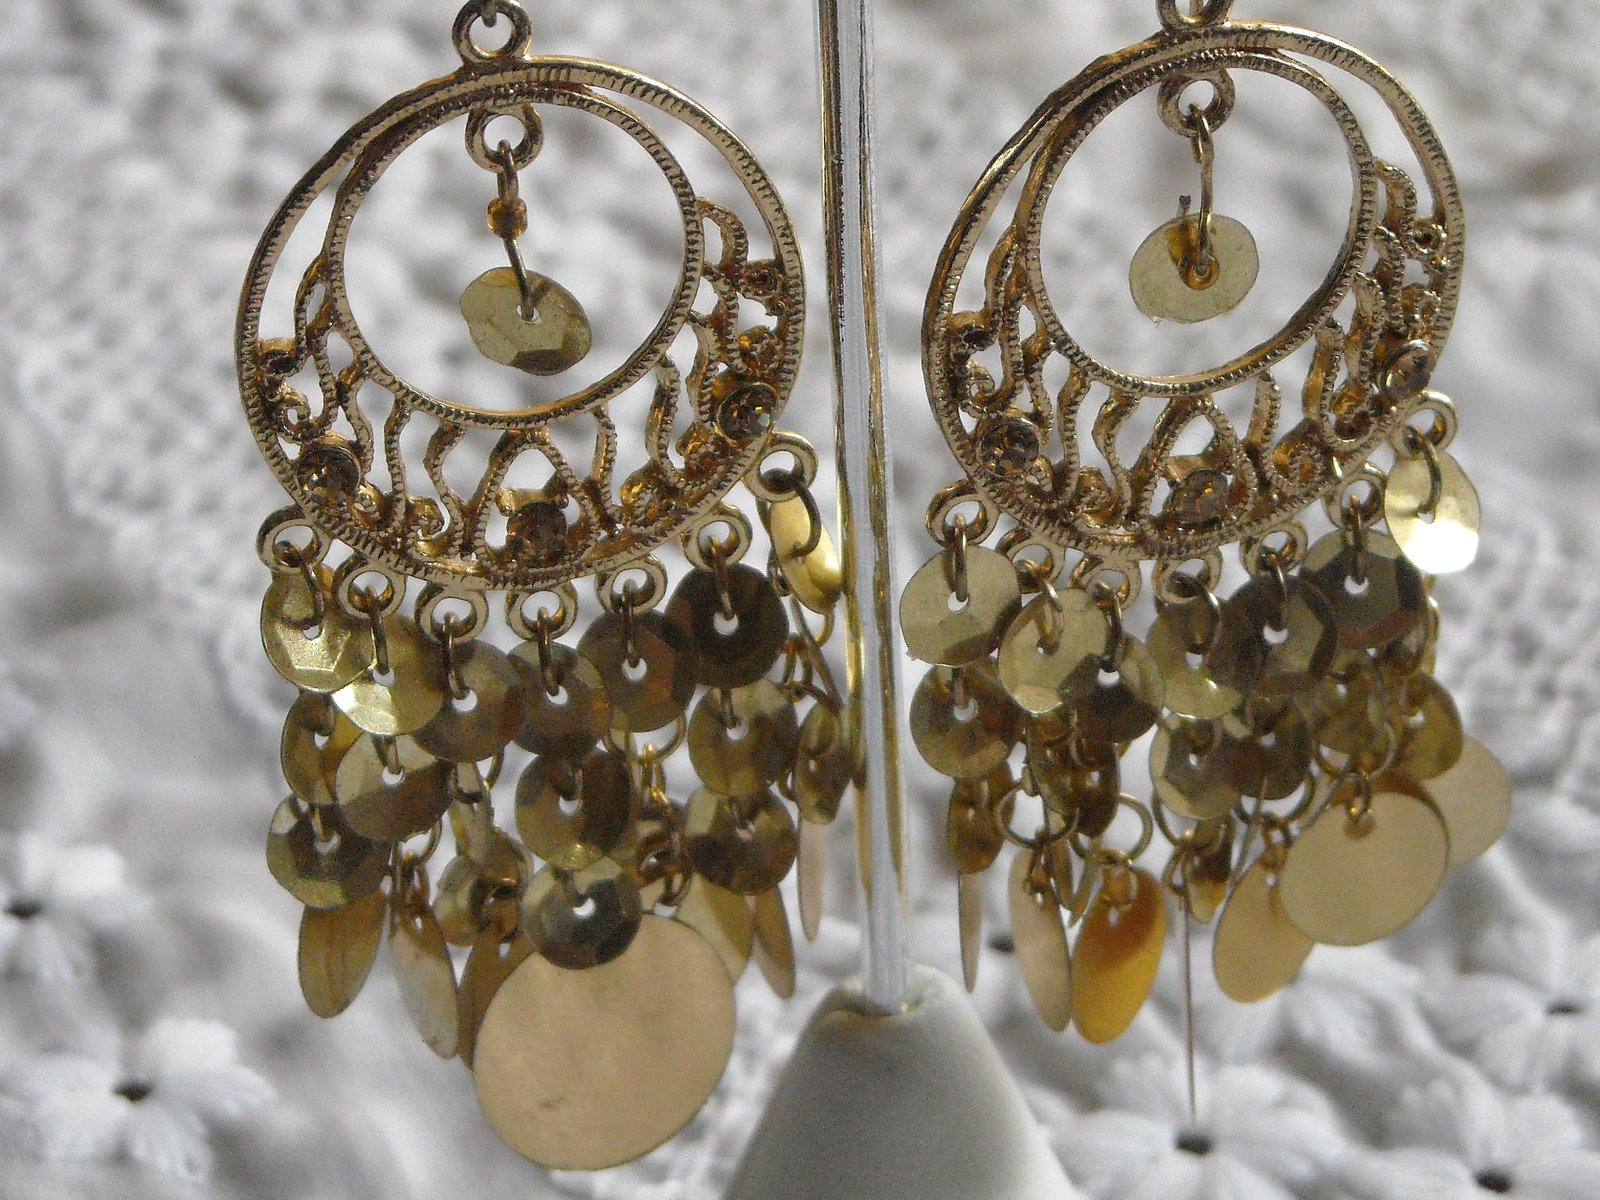 Vintage Earrings Chandelire Hook Gold Tone Filigree With Gold Sequins Chacha  image 3